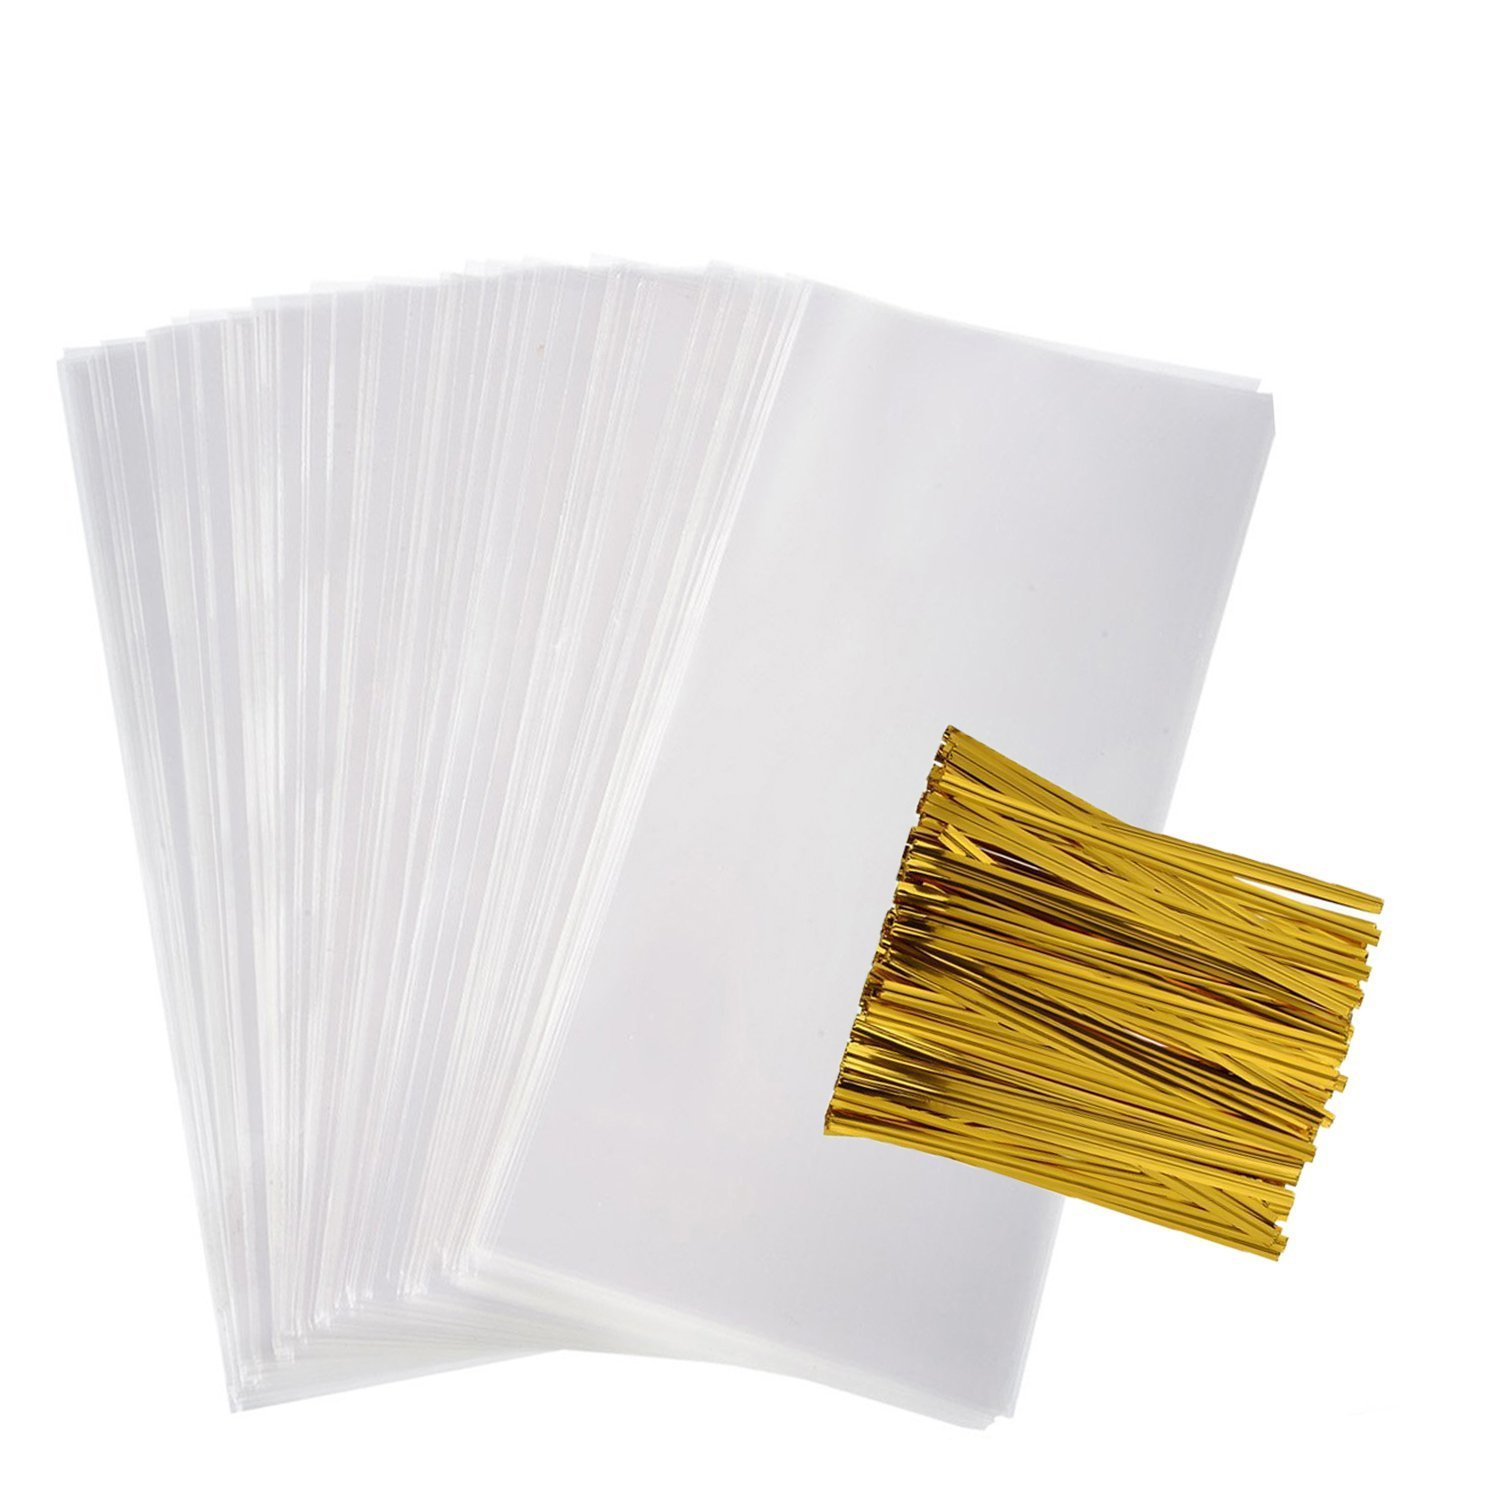 Clear Flat Bags Cellophane Bags 200 PCS Clear Cello Treat Bags Party Favor Flat Bags for Gift Bakery Cookies Candies Dessert with 200 PCS Metallic Twist Ties (4 by 9 inch)